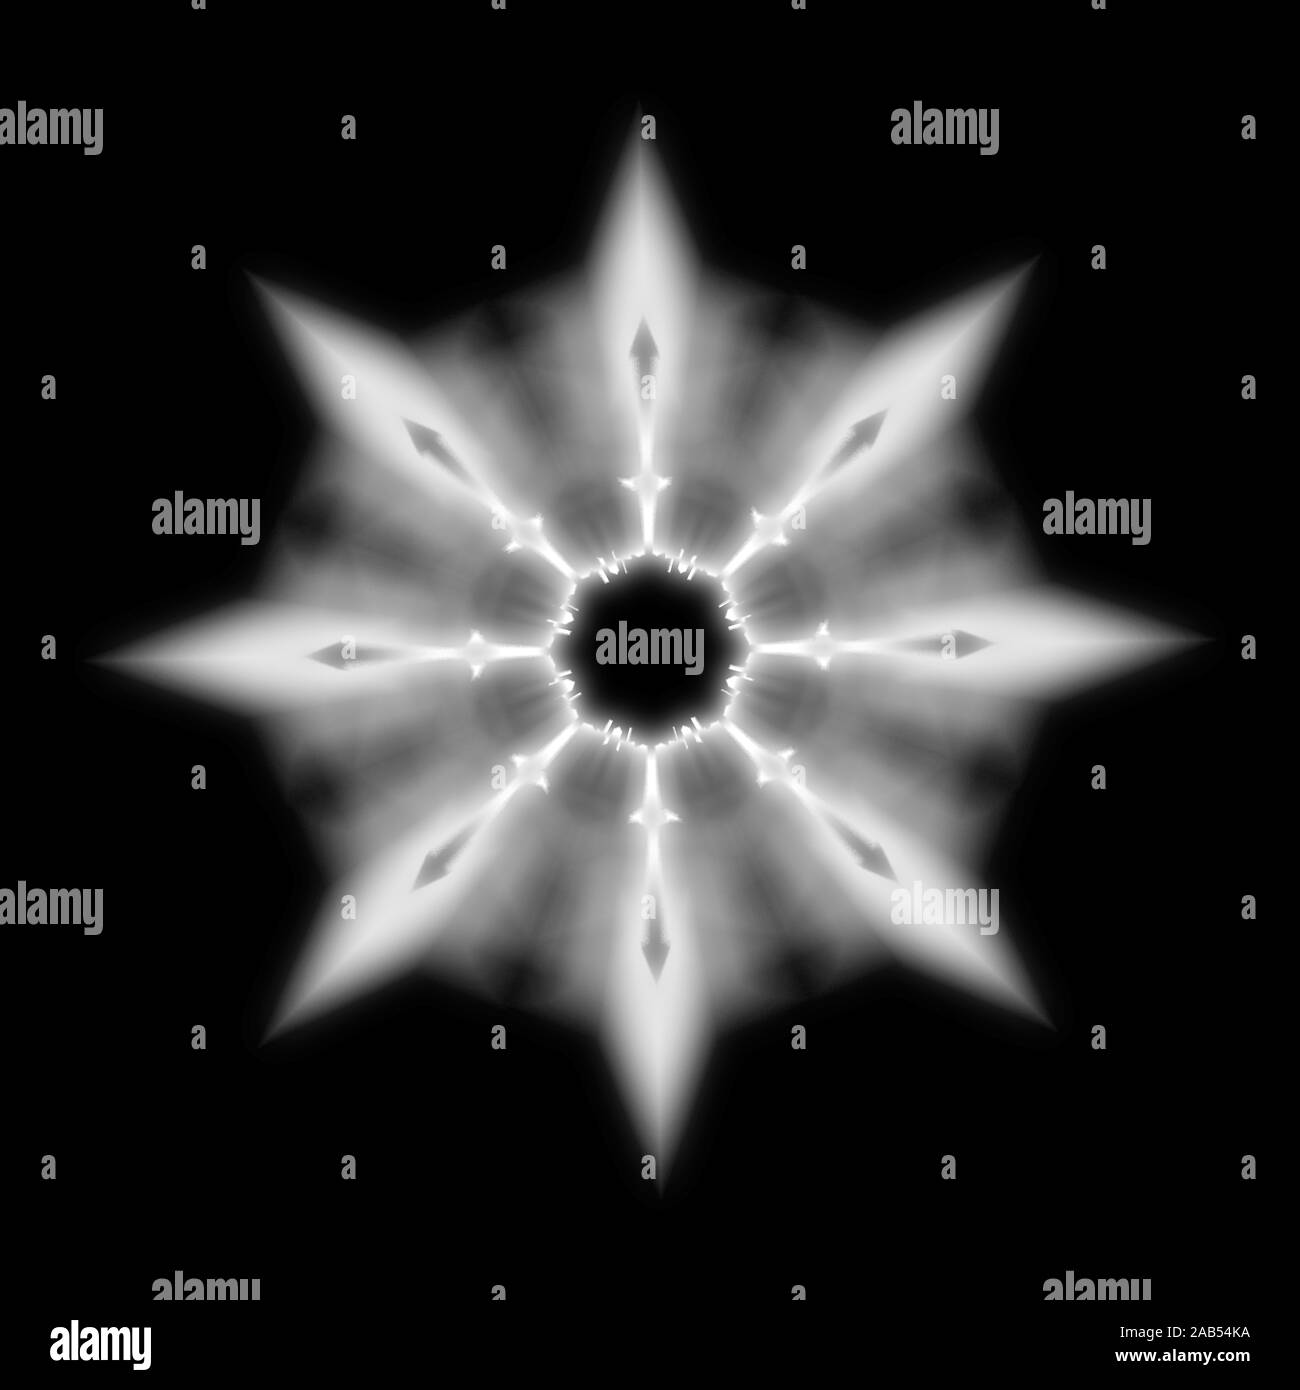 Psychedelic Black And White Stock Photos Images Alamy